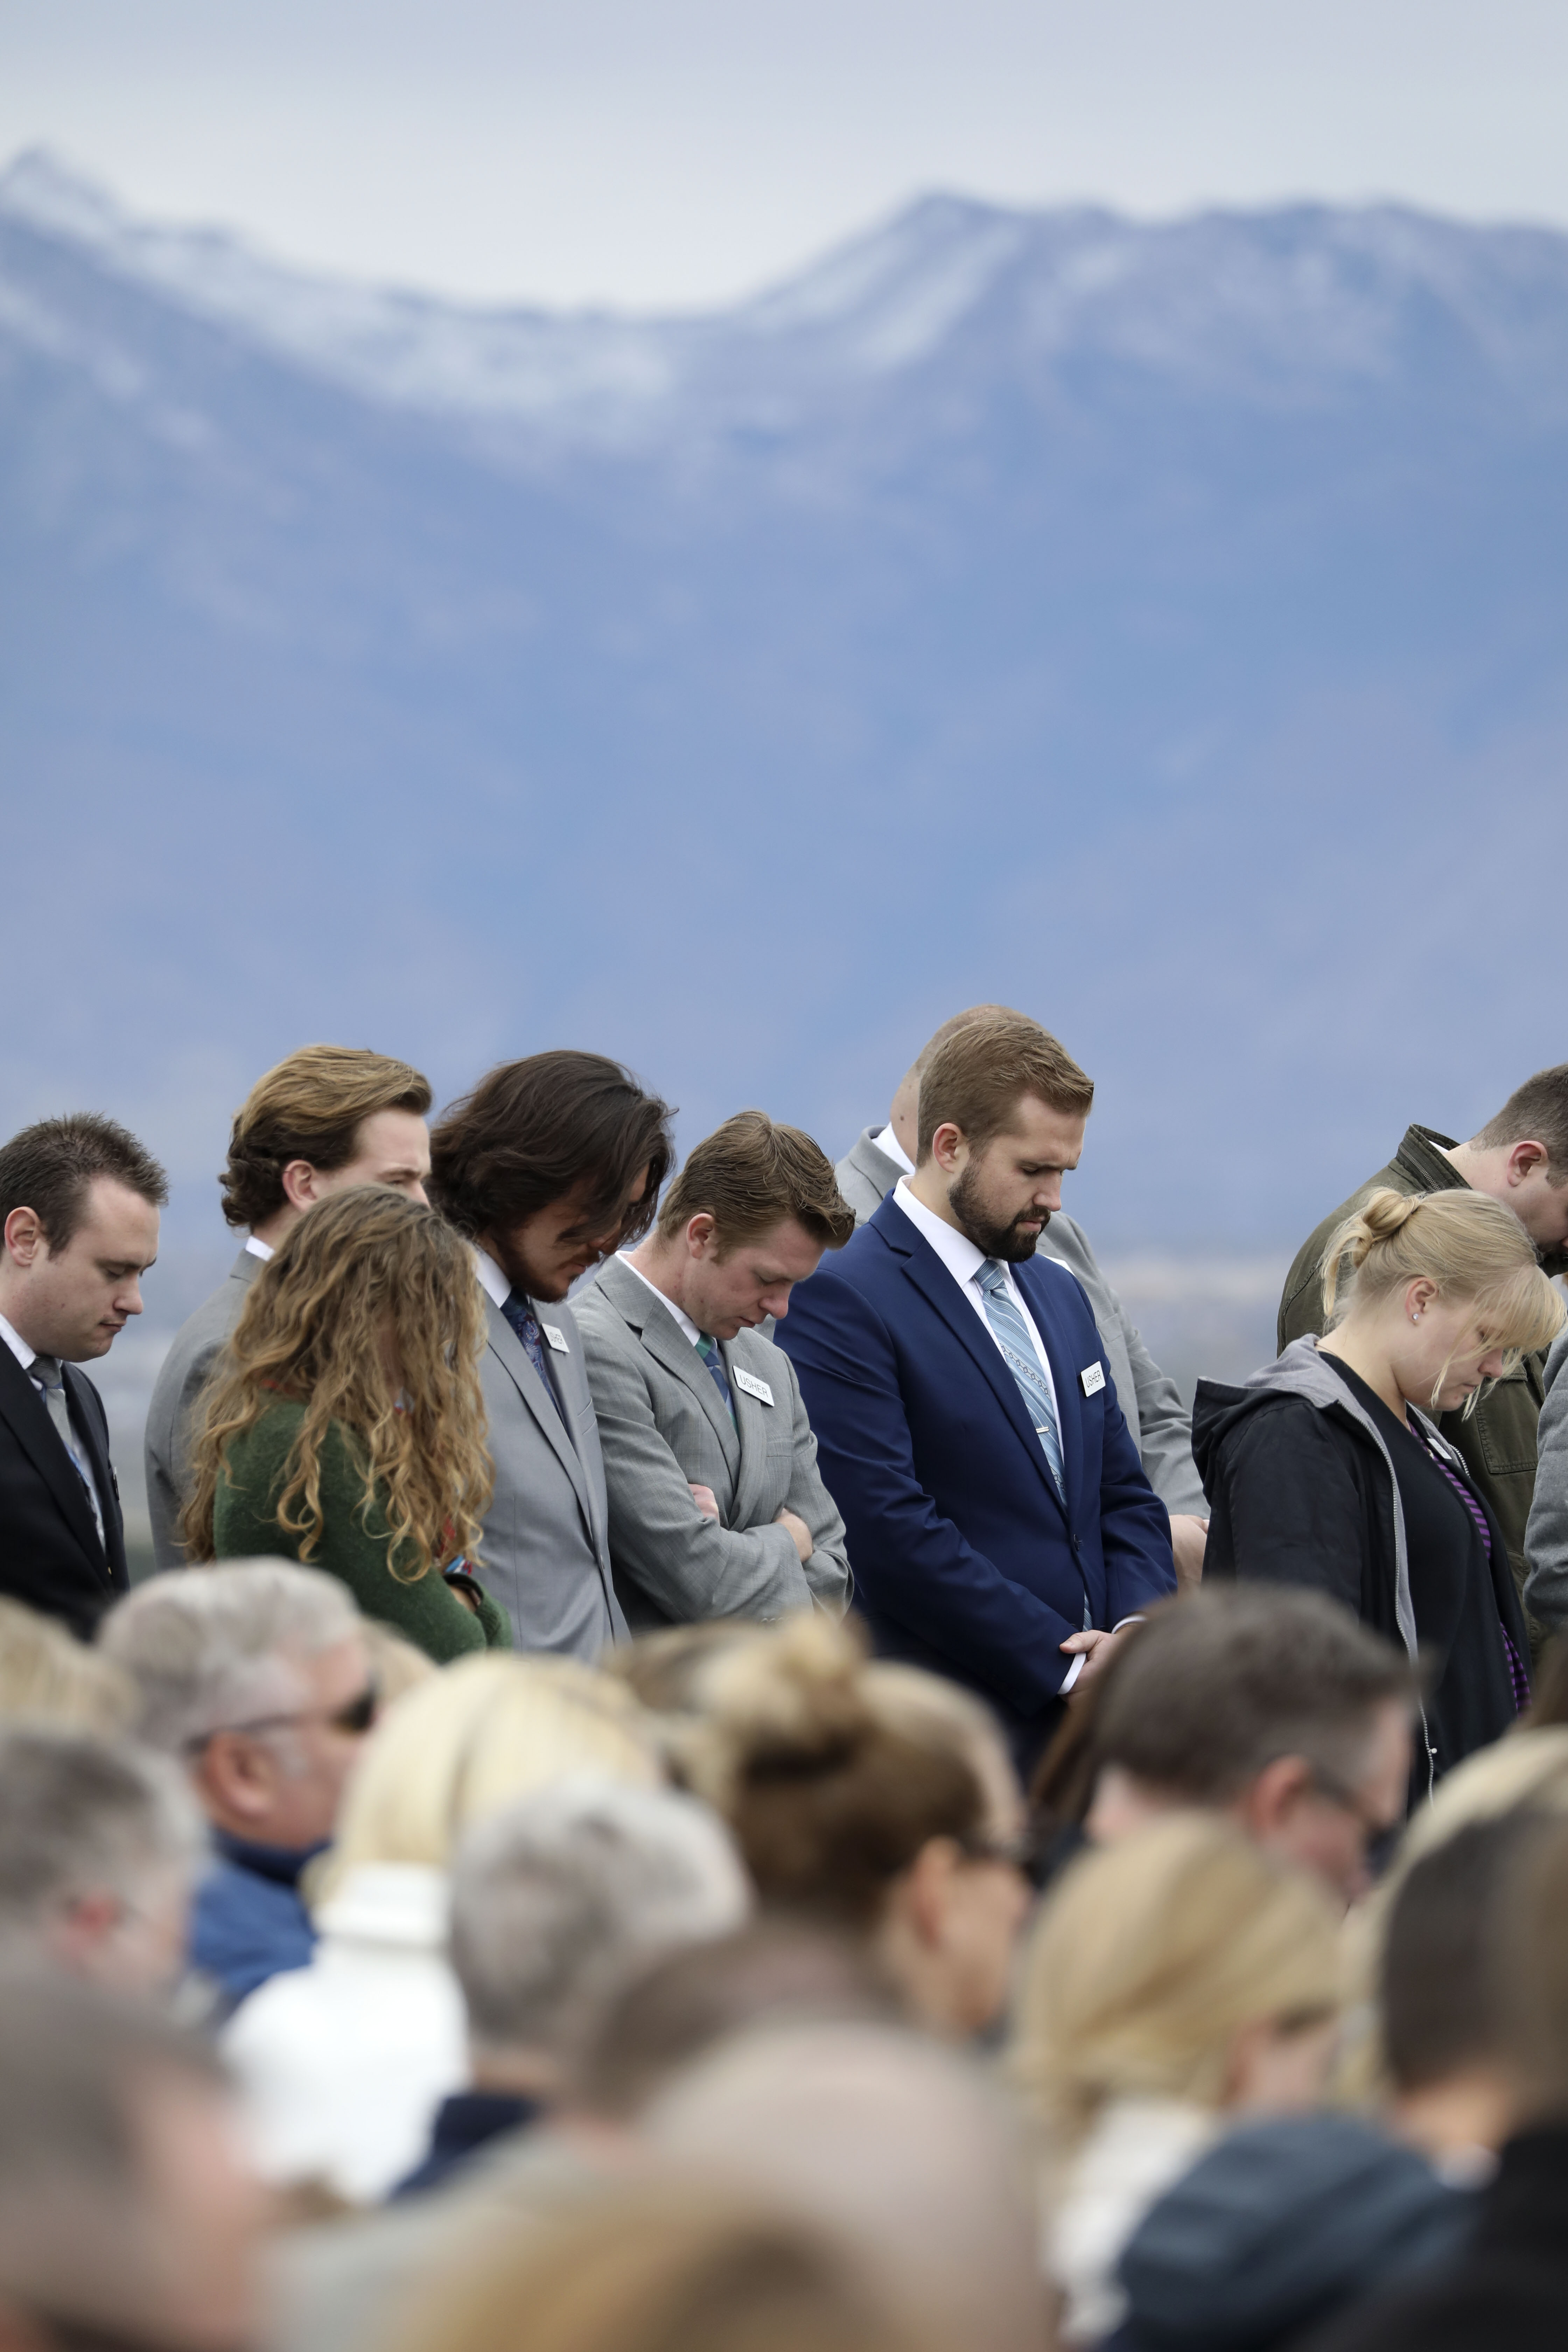 Latter-day Saints pray during the groundbreaking ceremony for the Saratoga Springs Utah Temple on Saturday, Oct. 19, 2019.